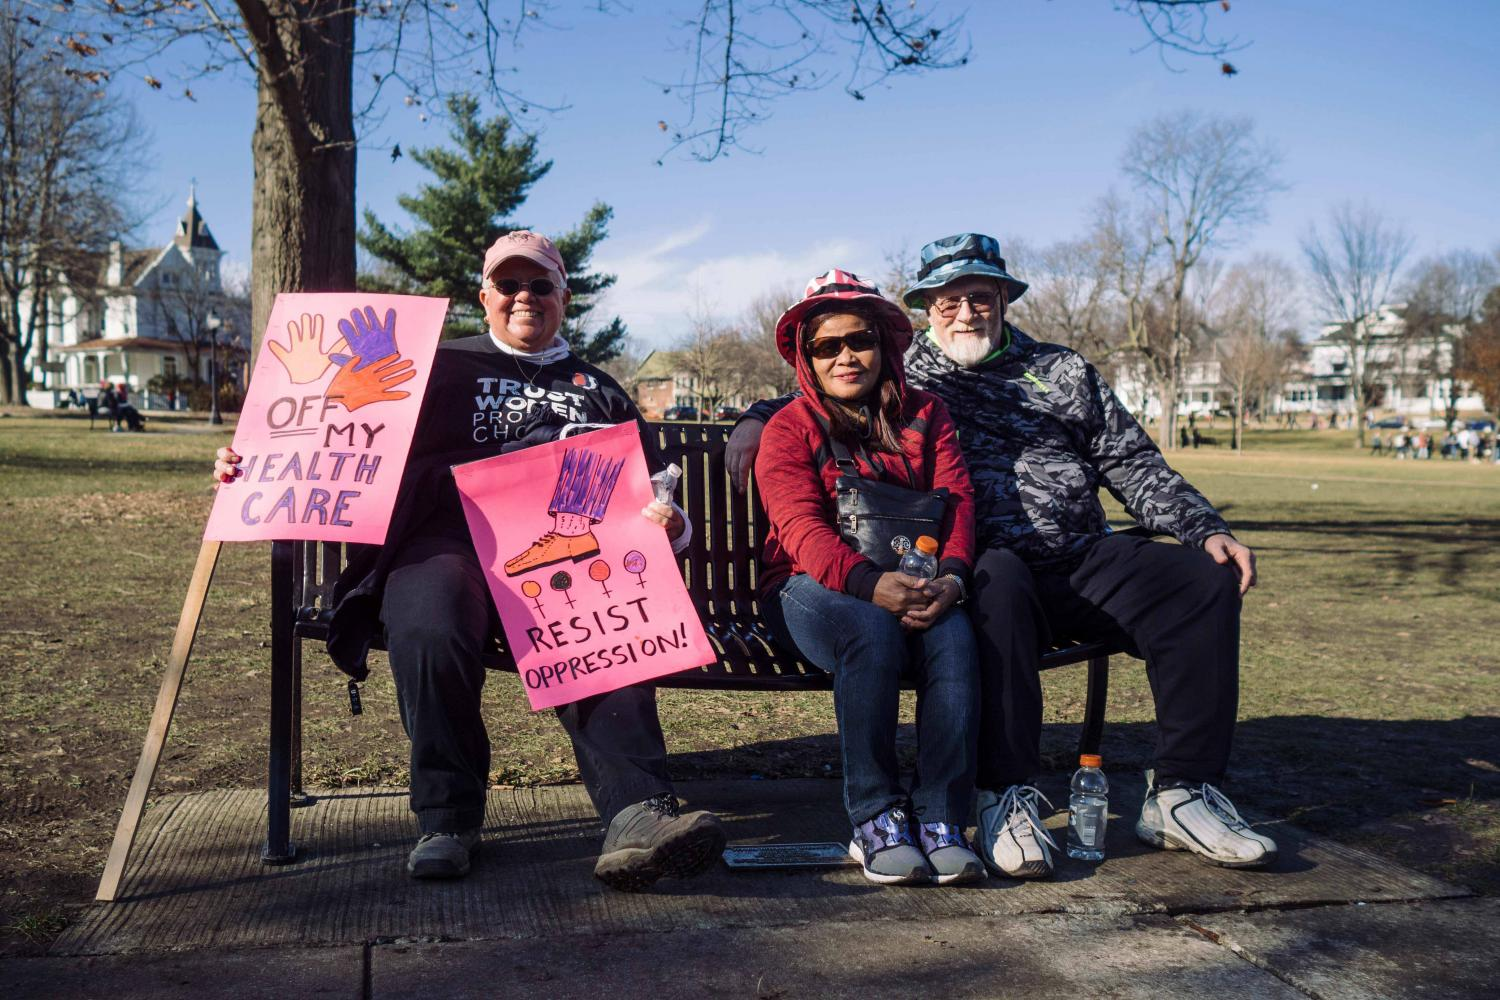 Women march in protest of the president Trump administration on Saturday, Jan 21 2017.